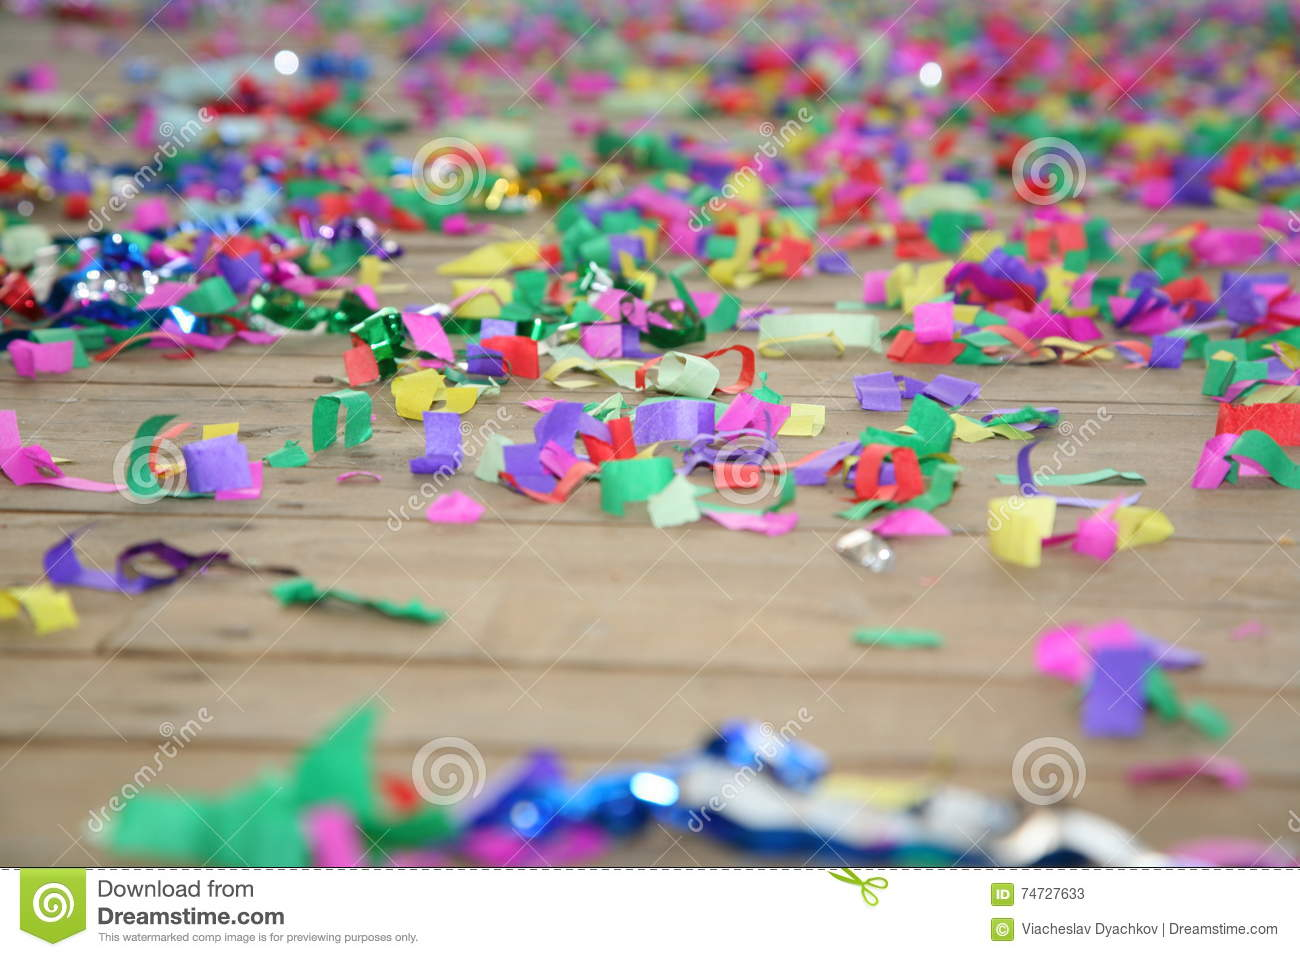 Colored streamers confetti scattered on the wooden plank floor. Happy party background.